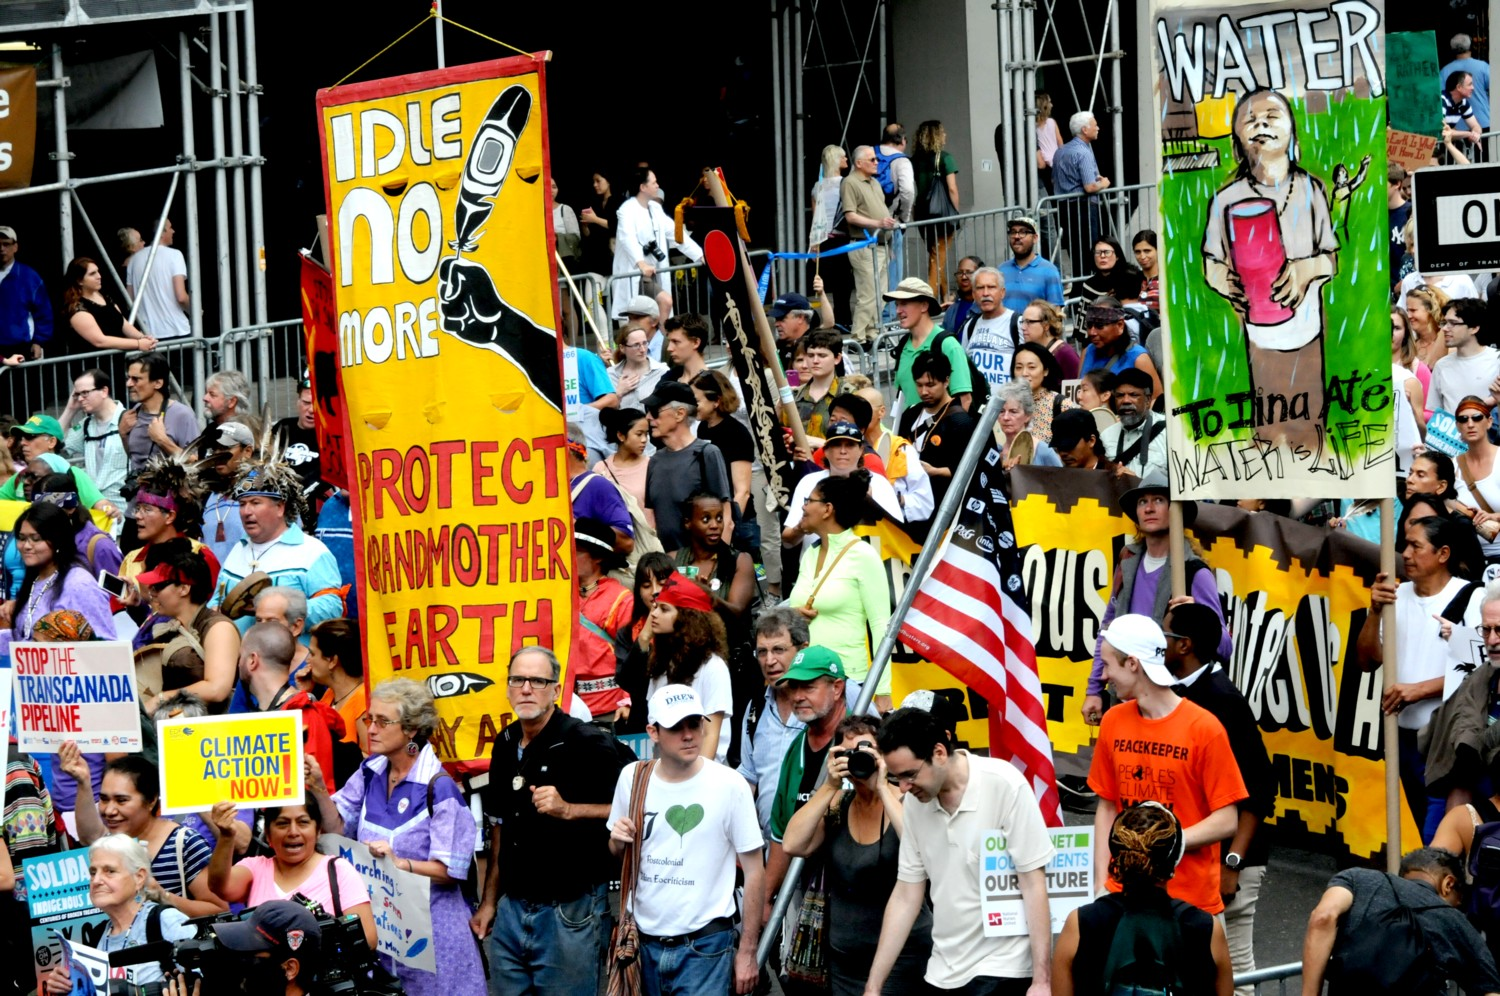 People's Climate March, September 2014: Environmentalists are hailing President Obama's decision to reject the Keystone XL Pipeline, in favor of promoting infrastructure supporting clean, renewable energy © 2015 Karen Rubin/news-photos-features.com